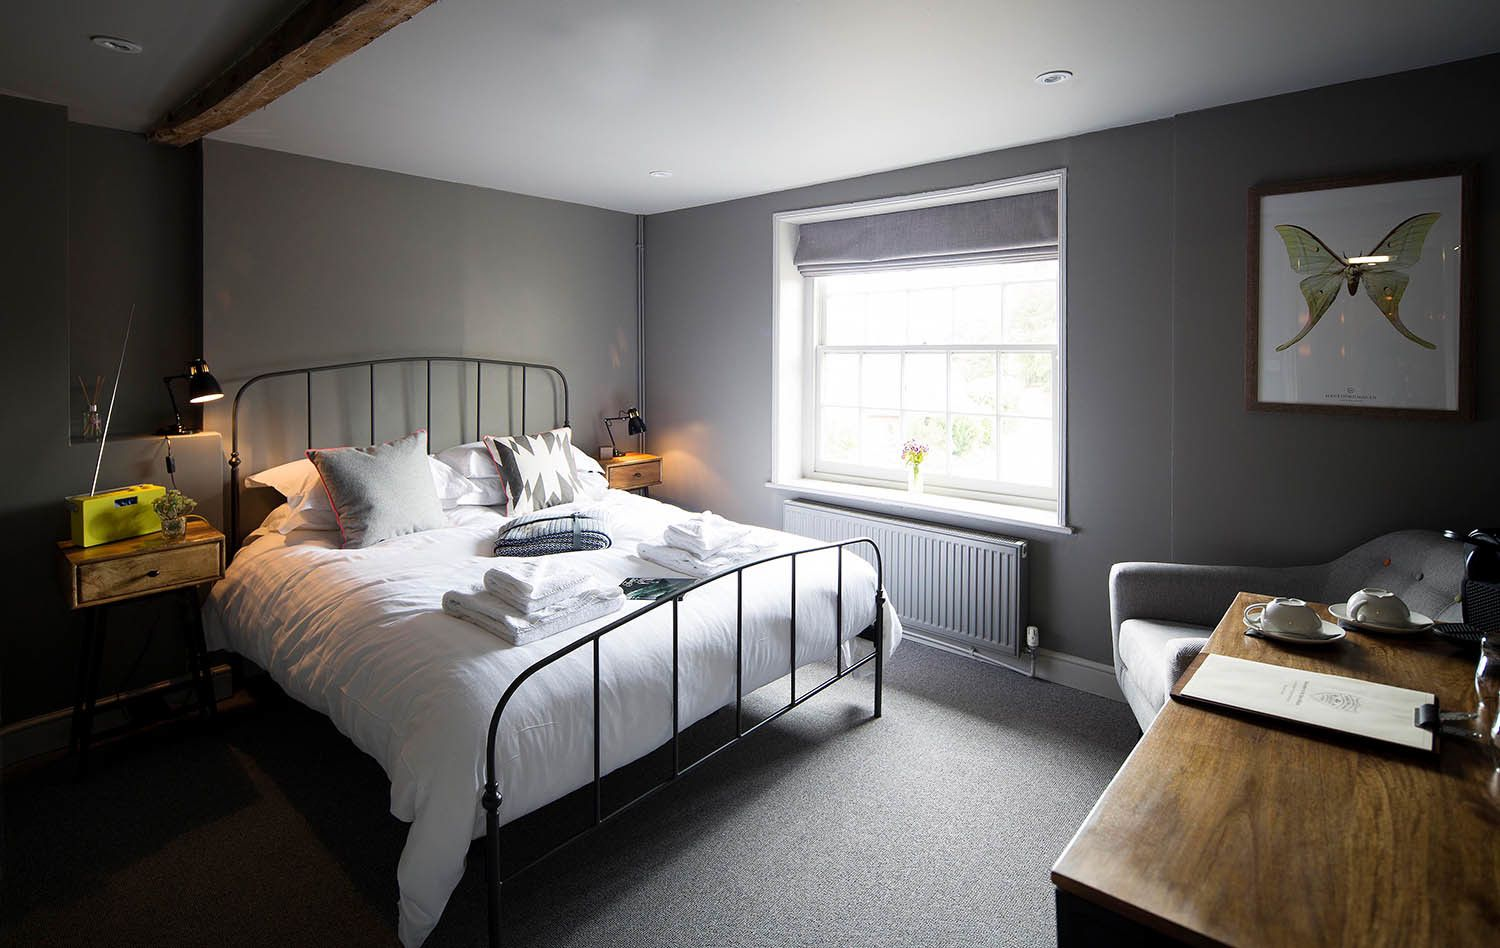 Hotels in Kent holidays at Cool Places